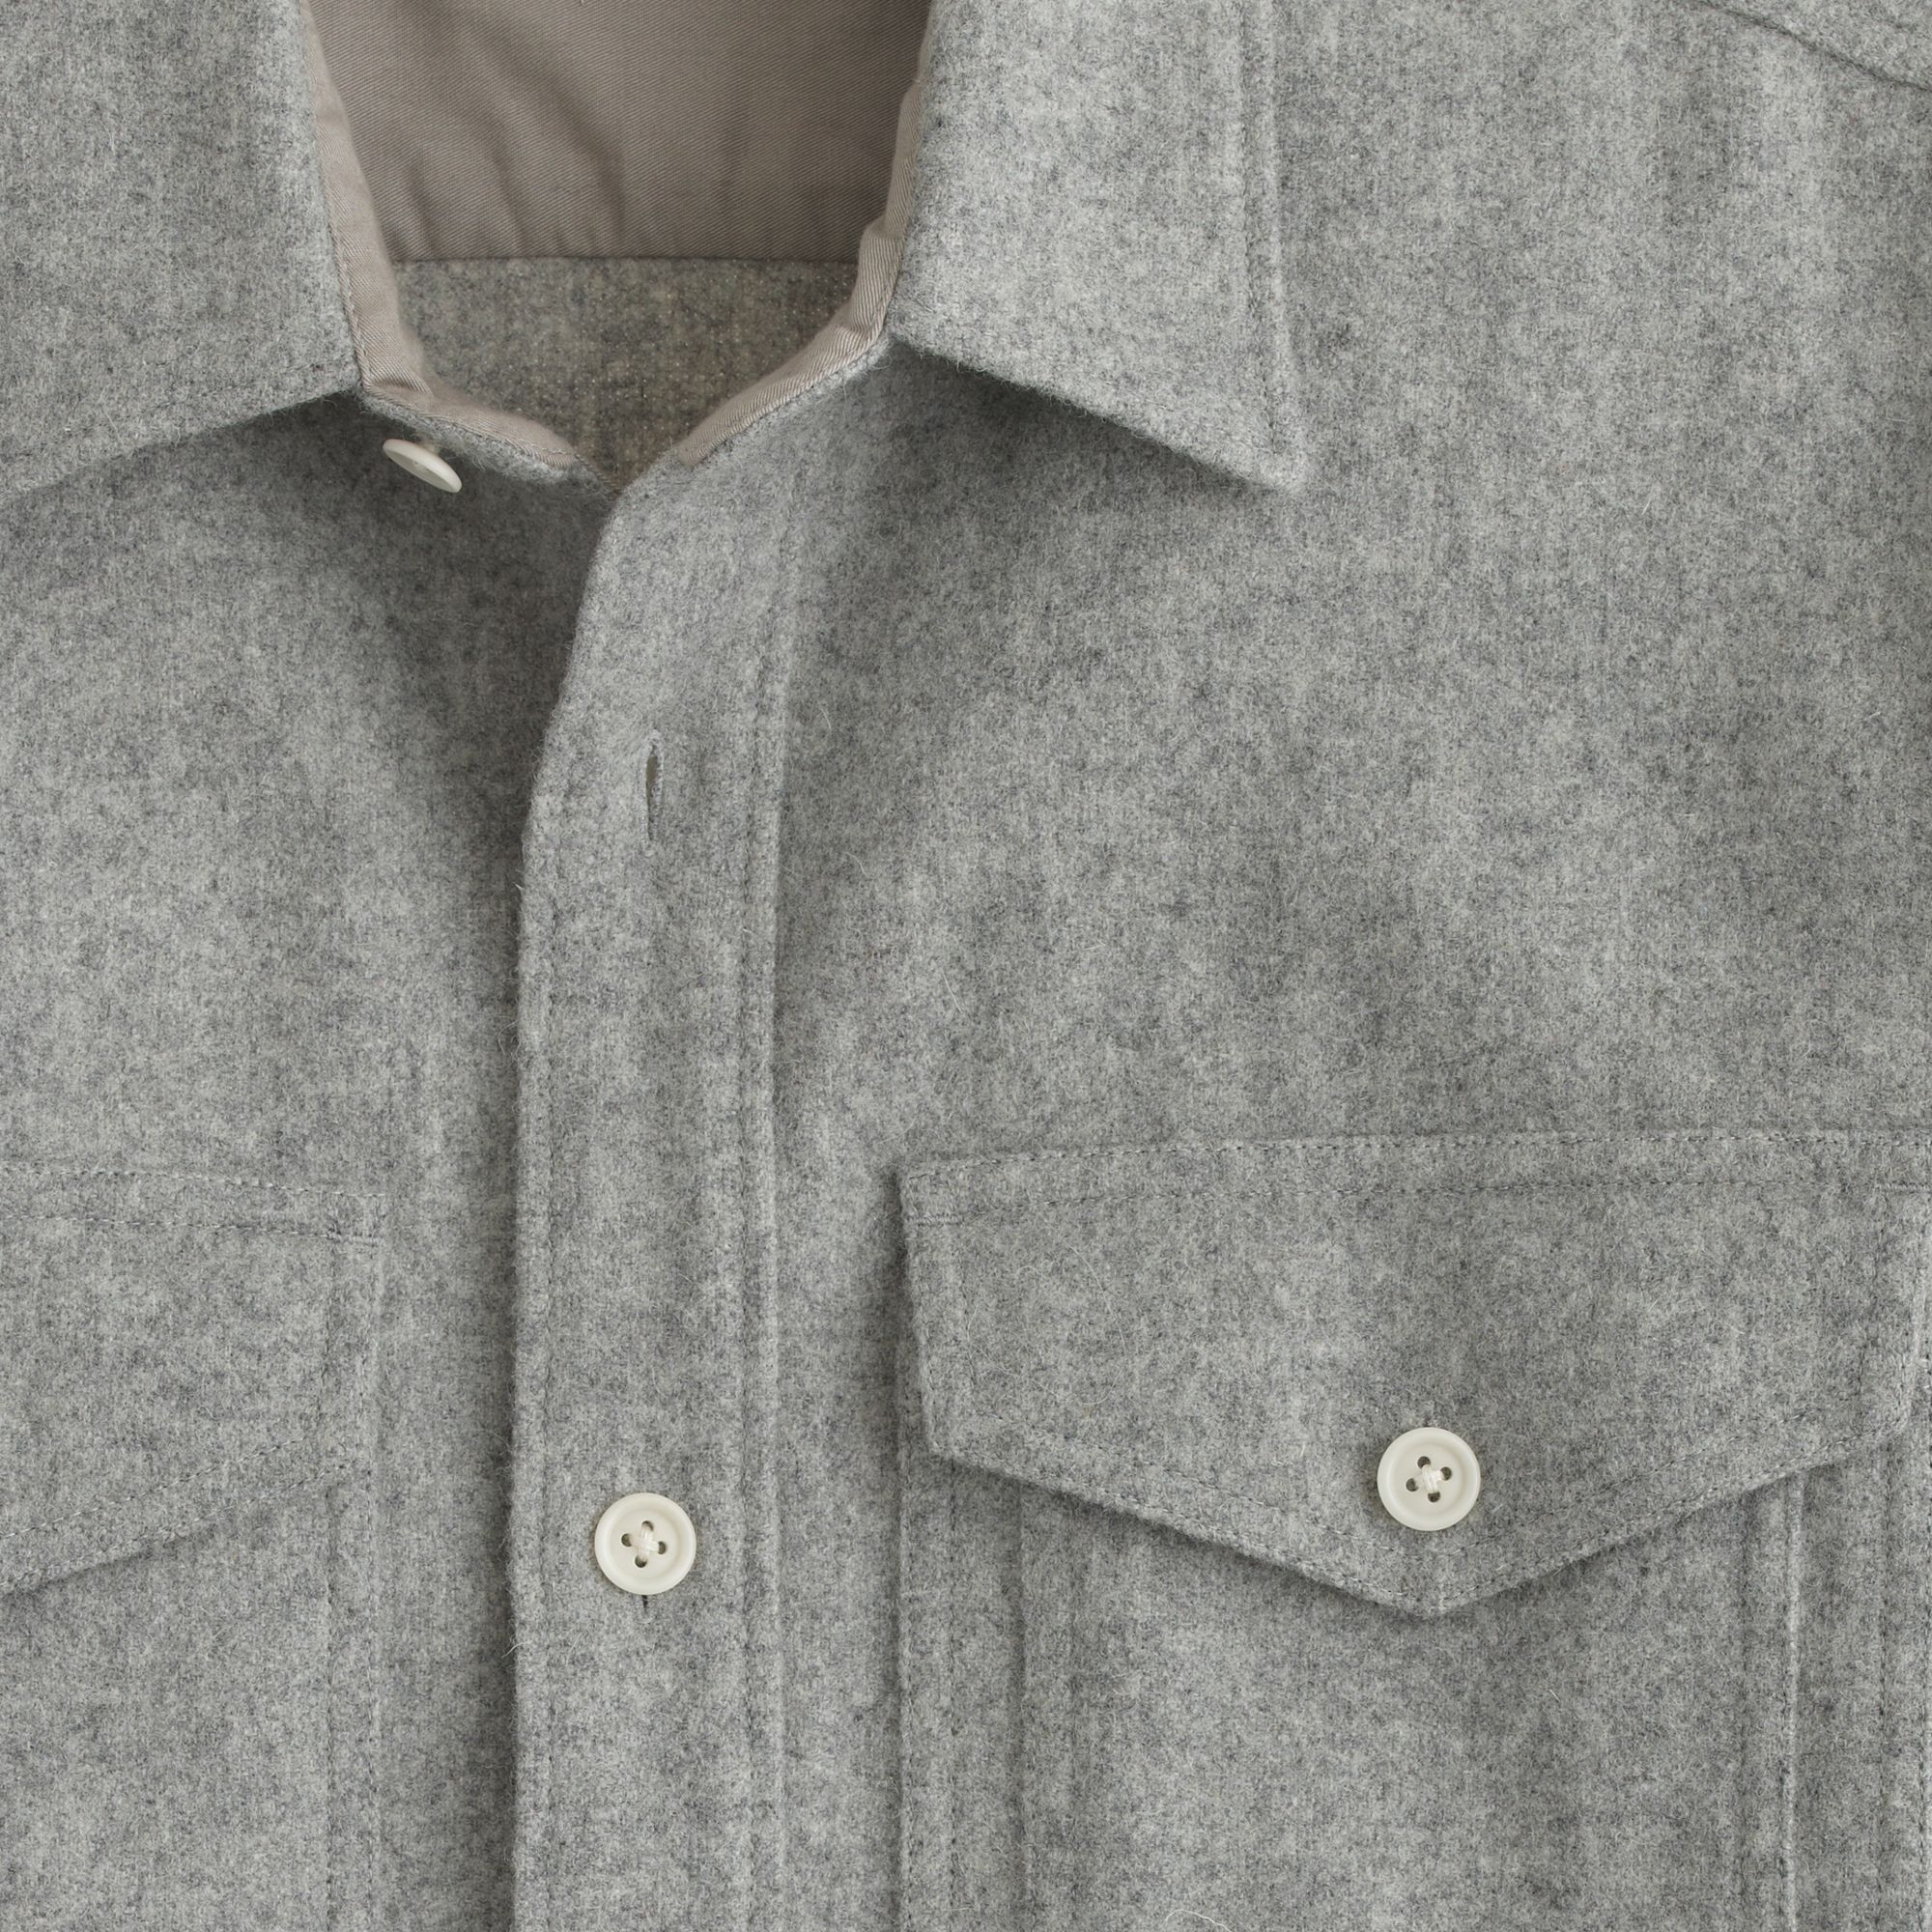 J Crew Wallace Amp Barnes Hunting Overshirt In Gray For Men